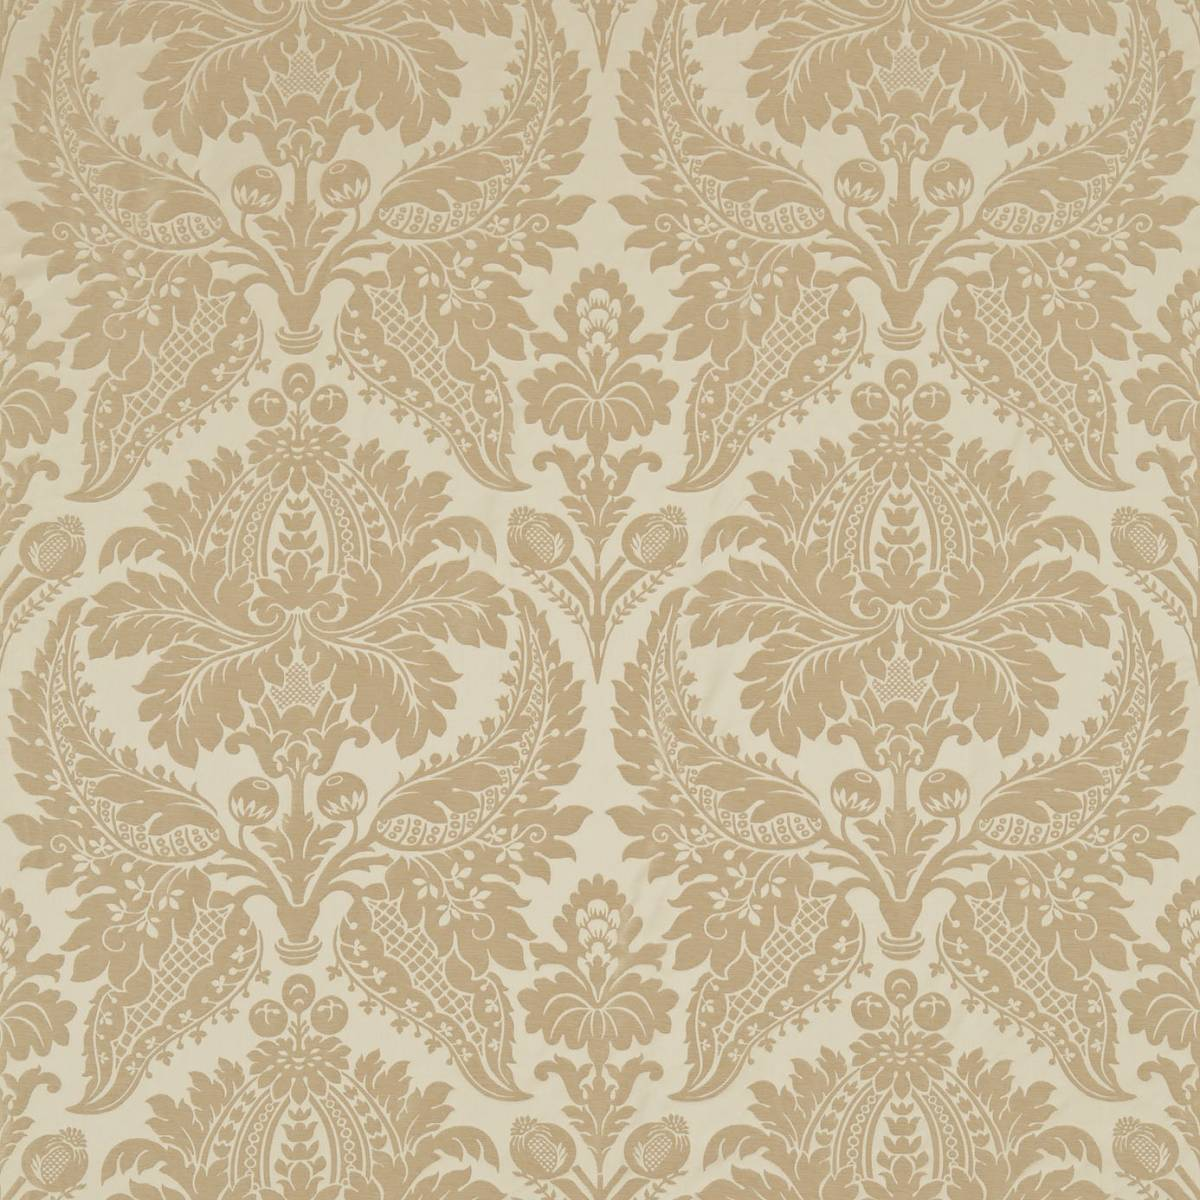 Curtains in Malmaison Damask Fabric - Pale Gold (331932 ...